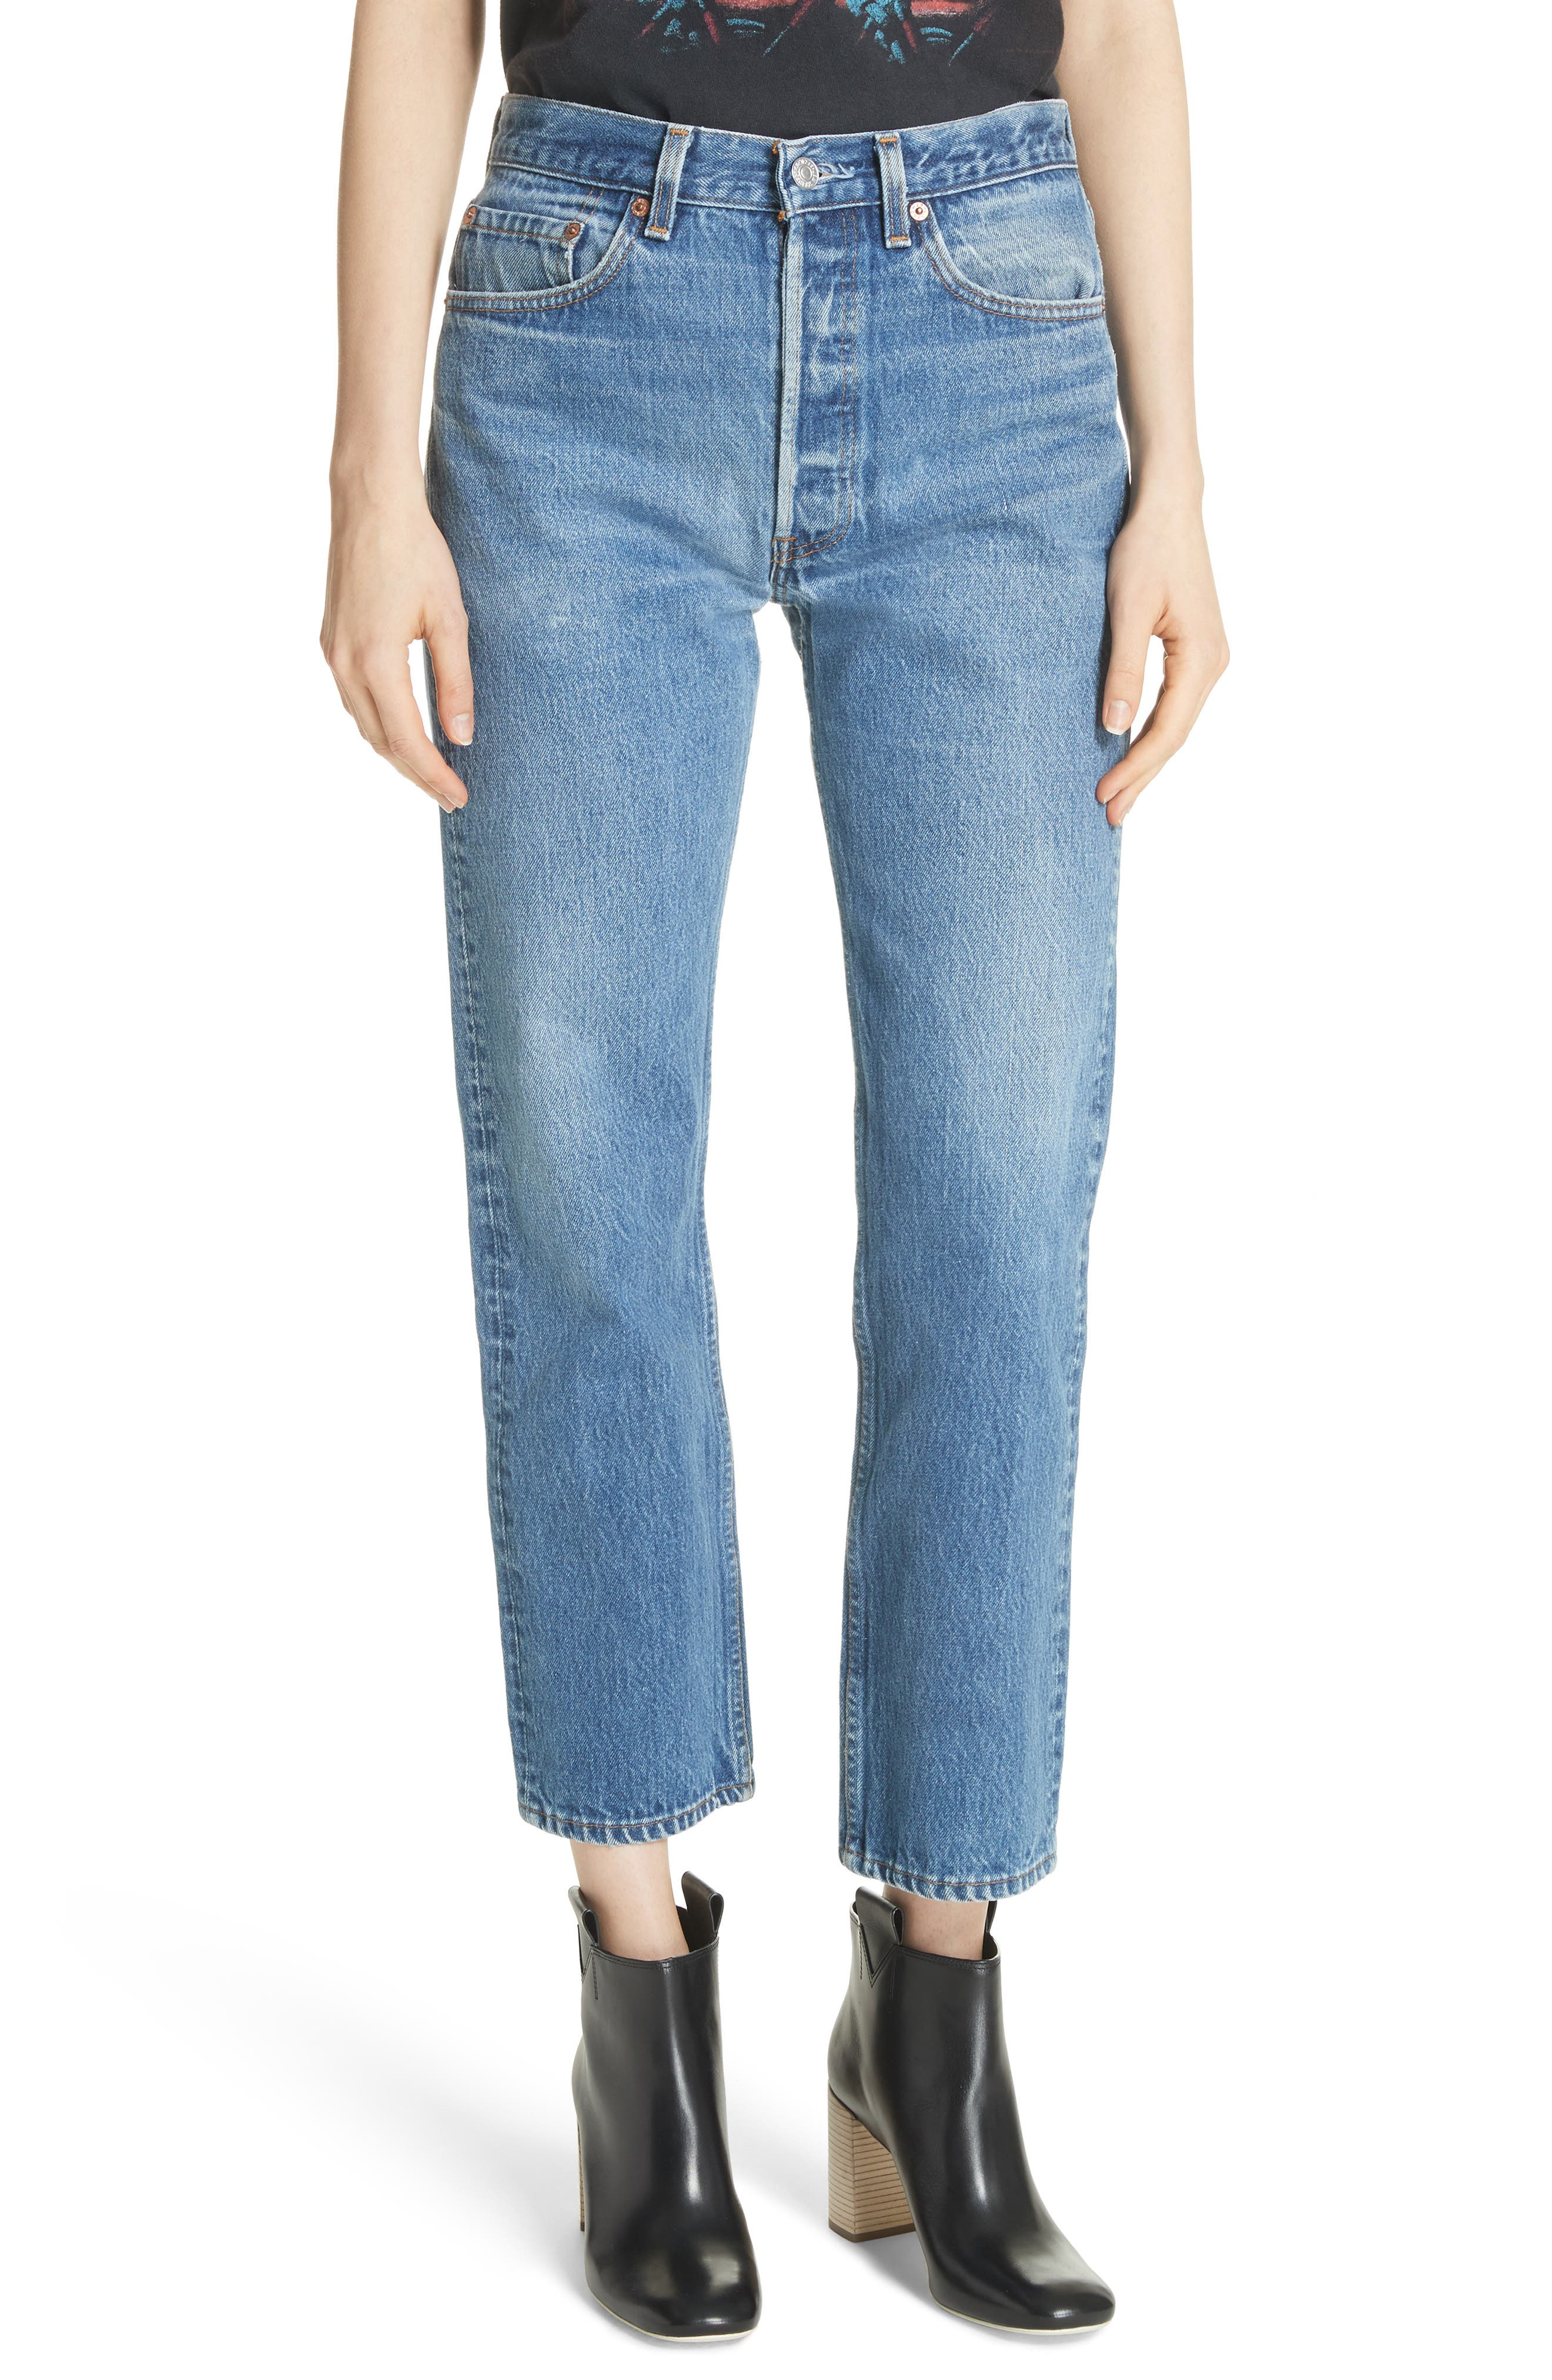 Elizabeth and James Michelle Vintage Straight Leg Jeans